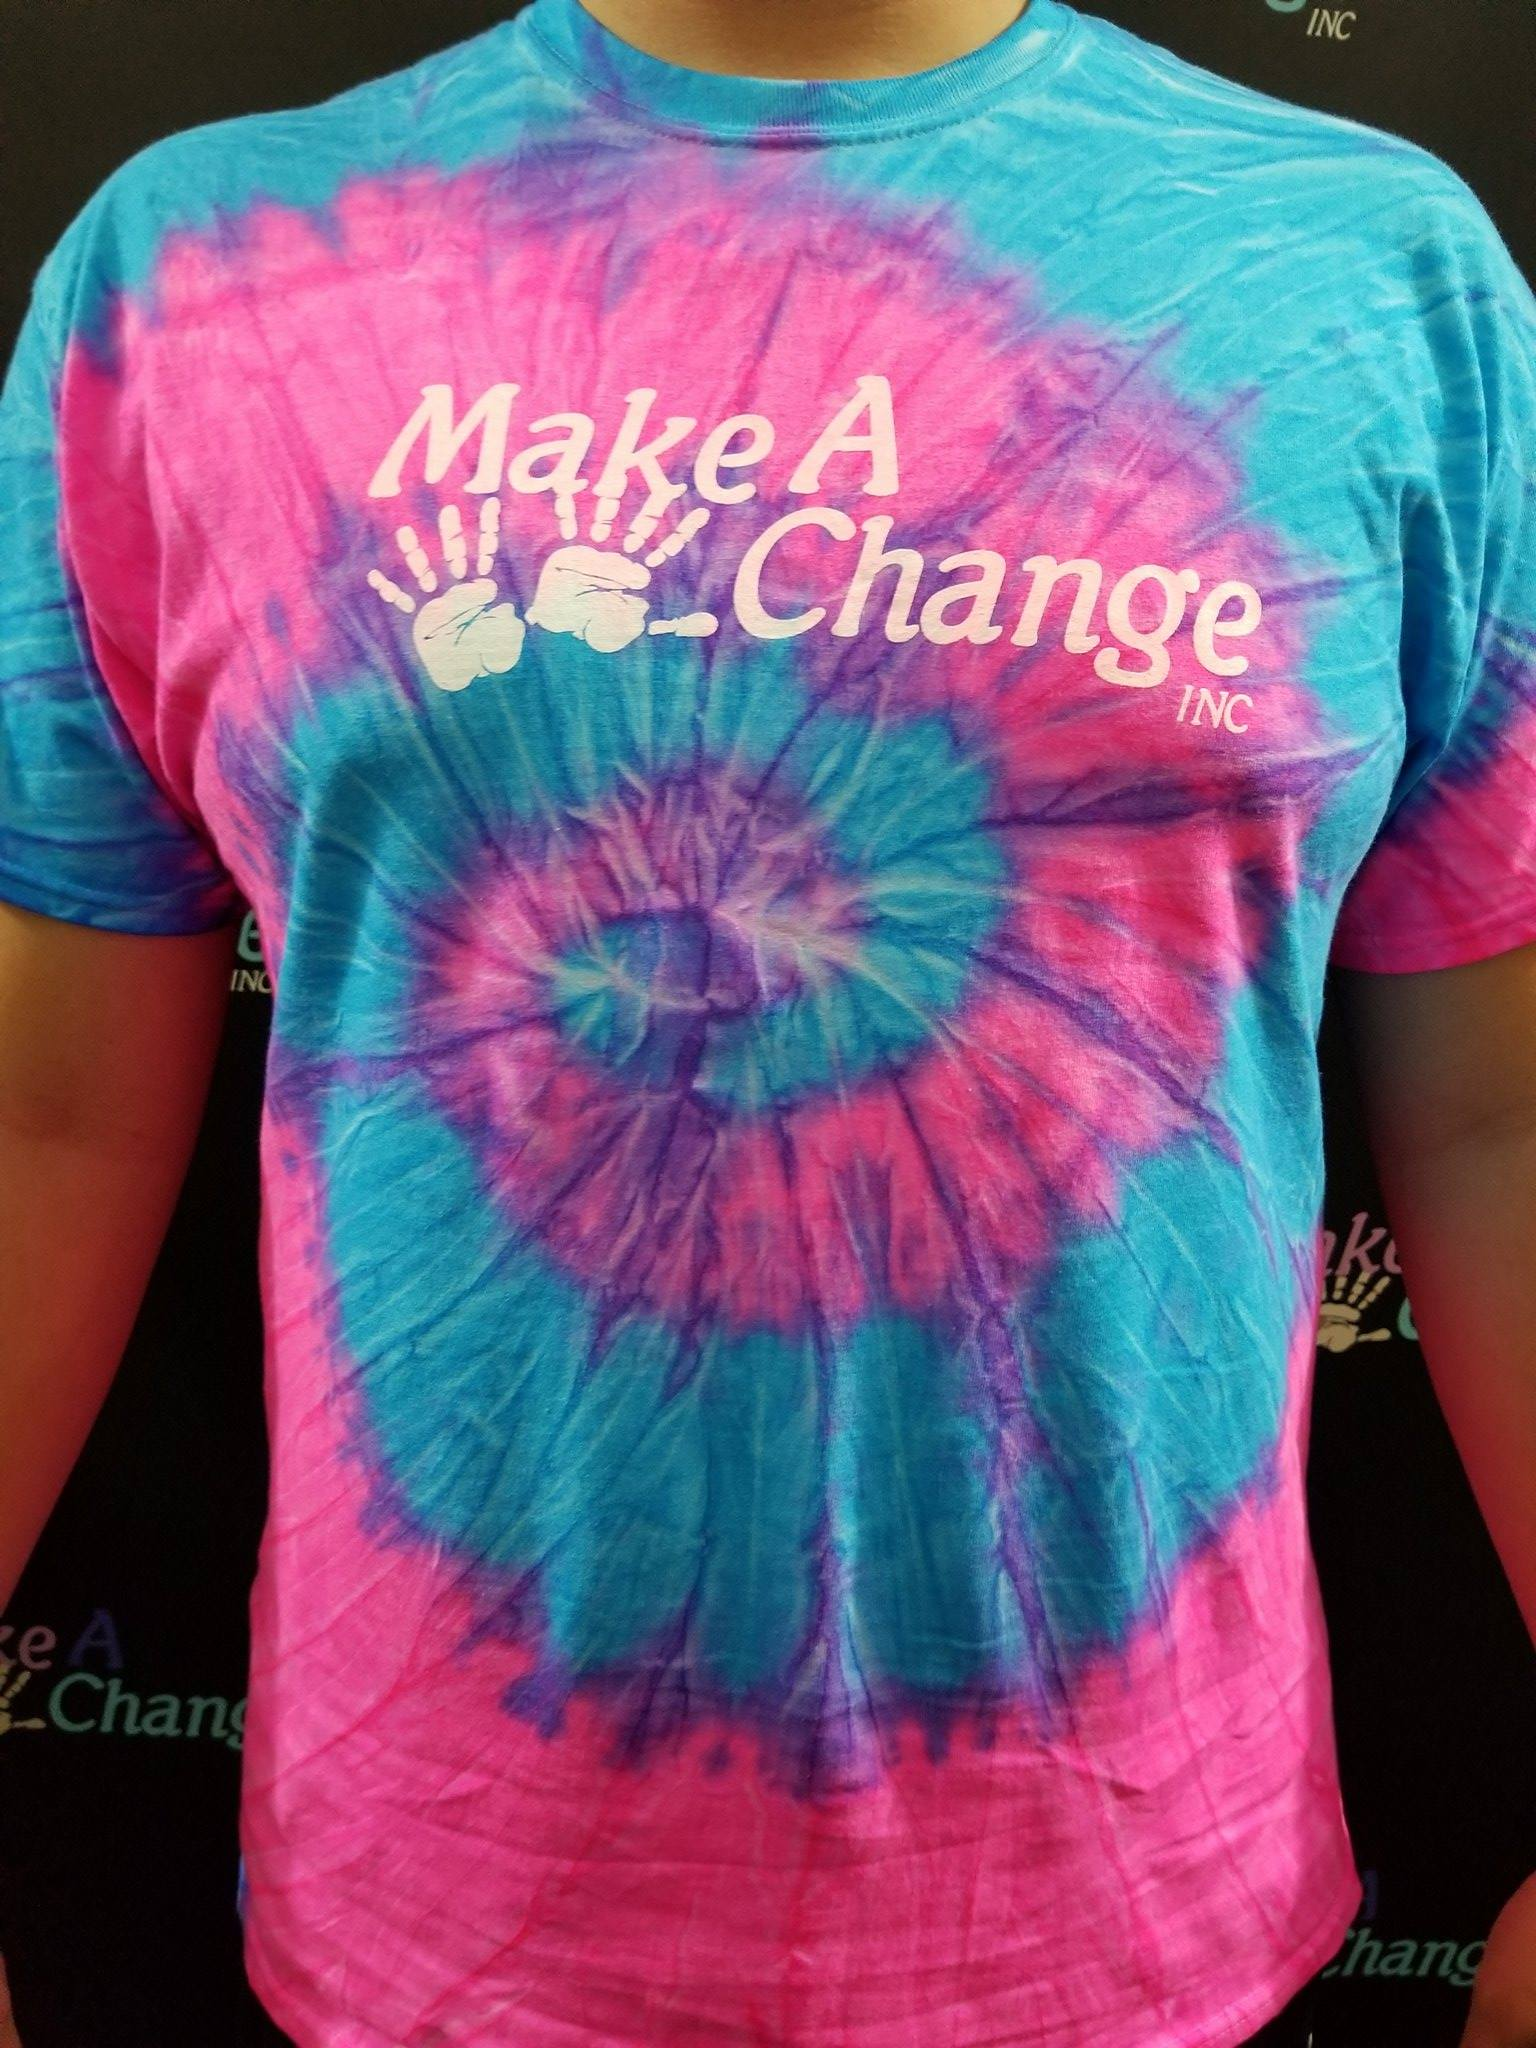 Make-A-Change Inc. Shirts